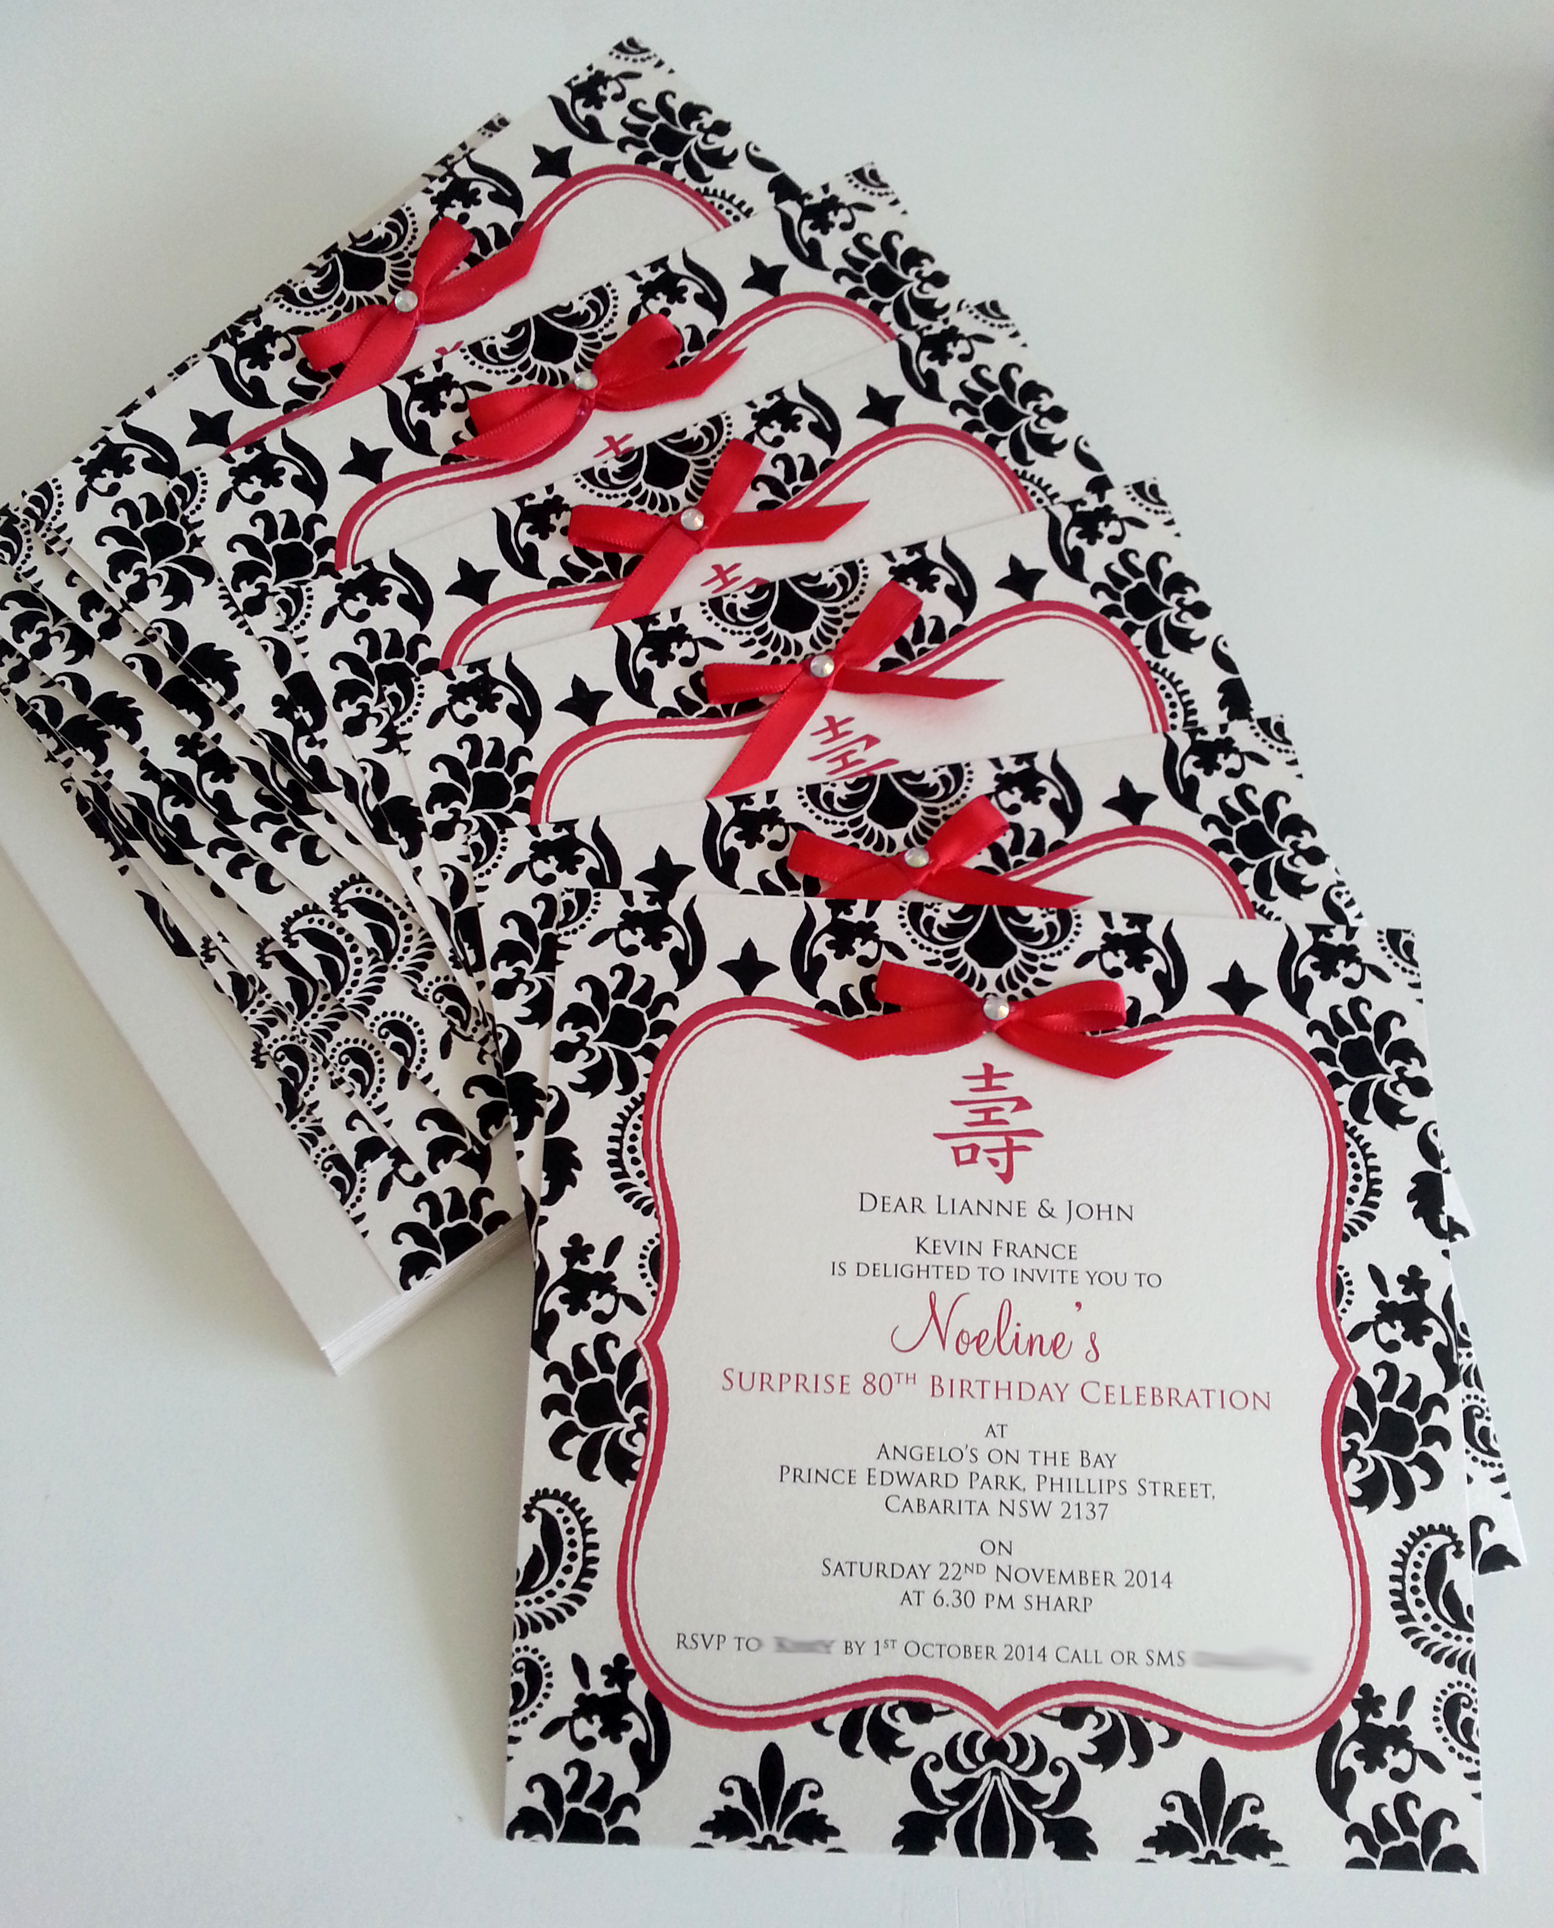 Longevity 80th Birthday invitation with black and red damask.jpg